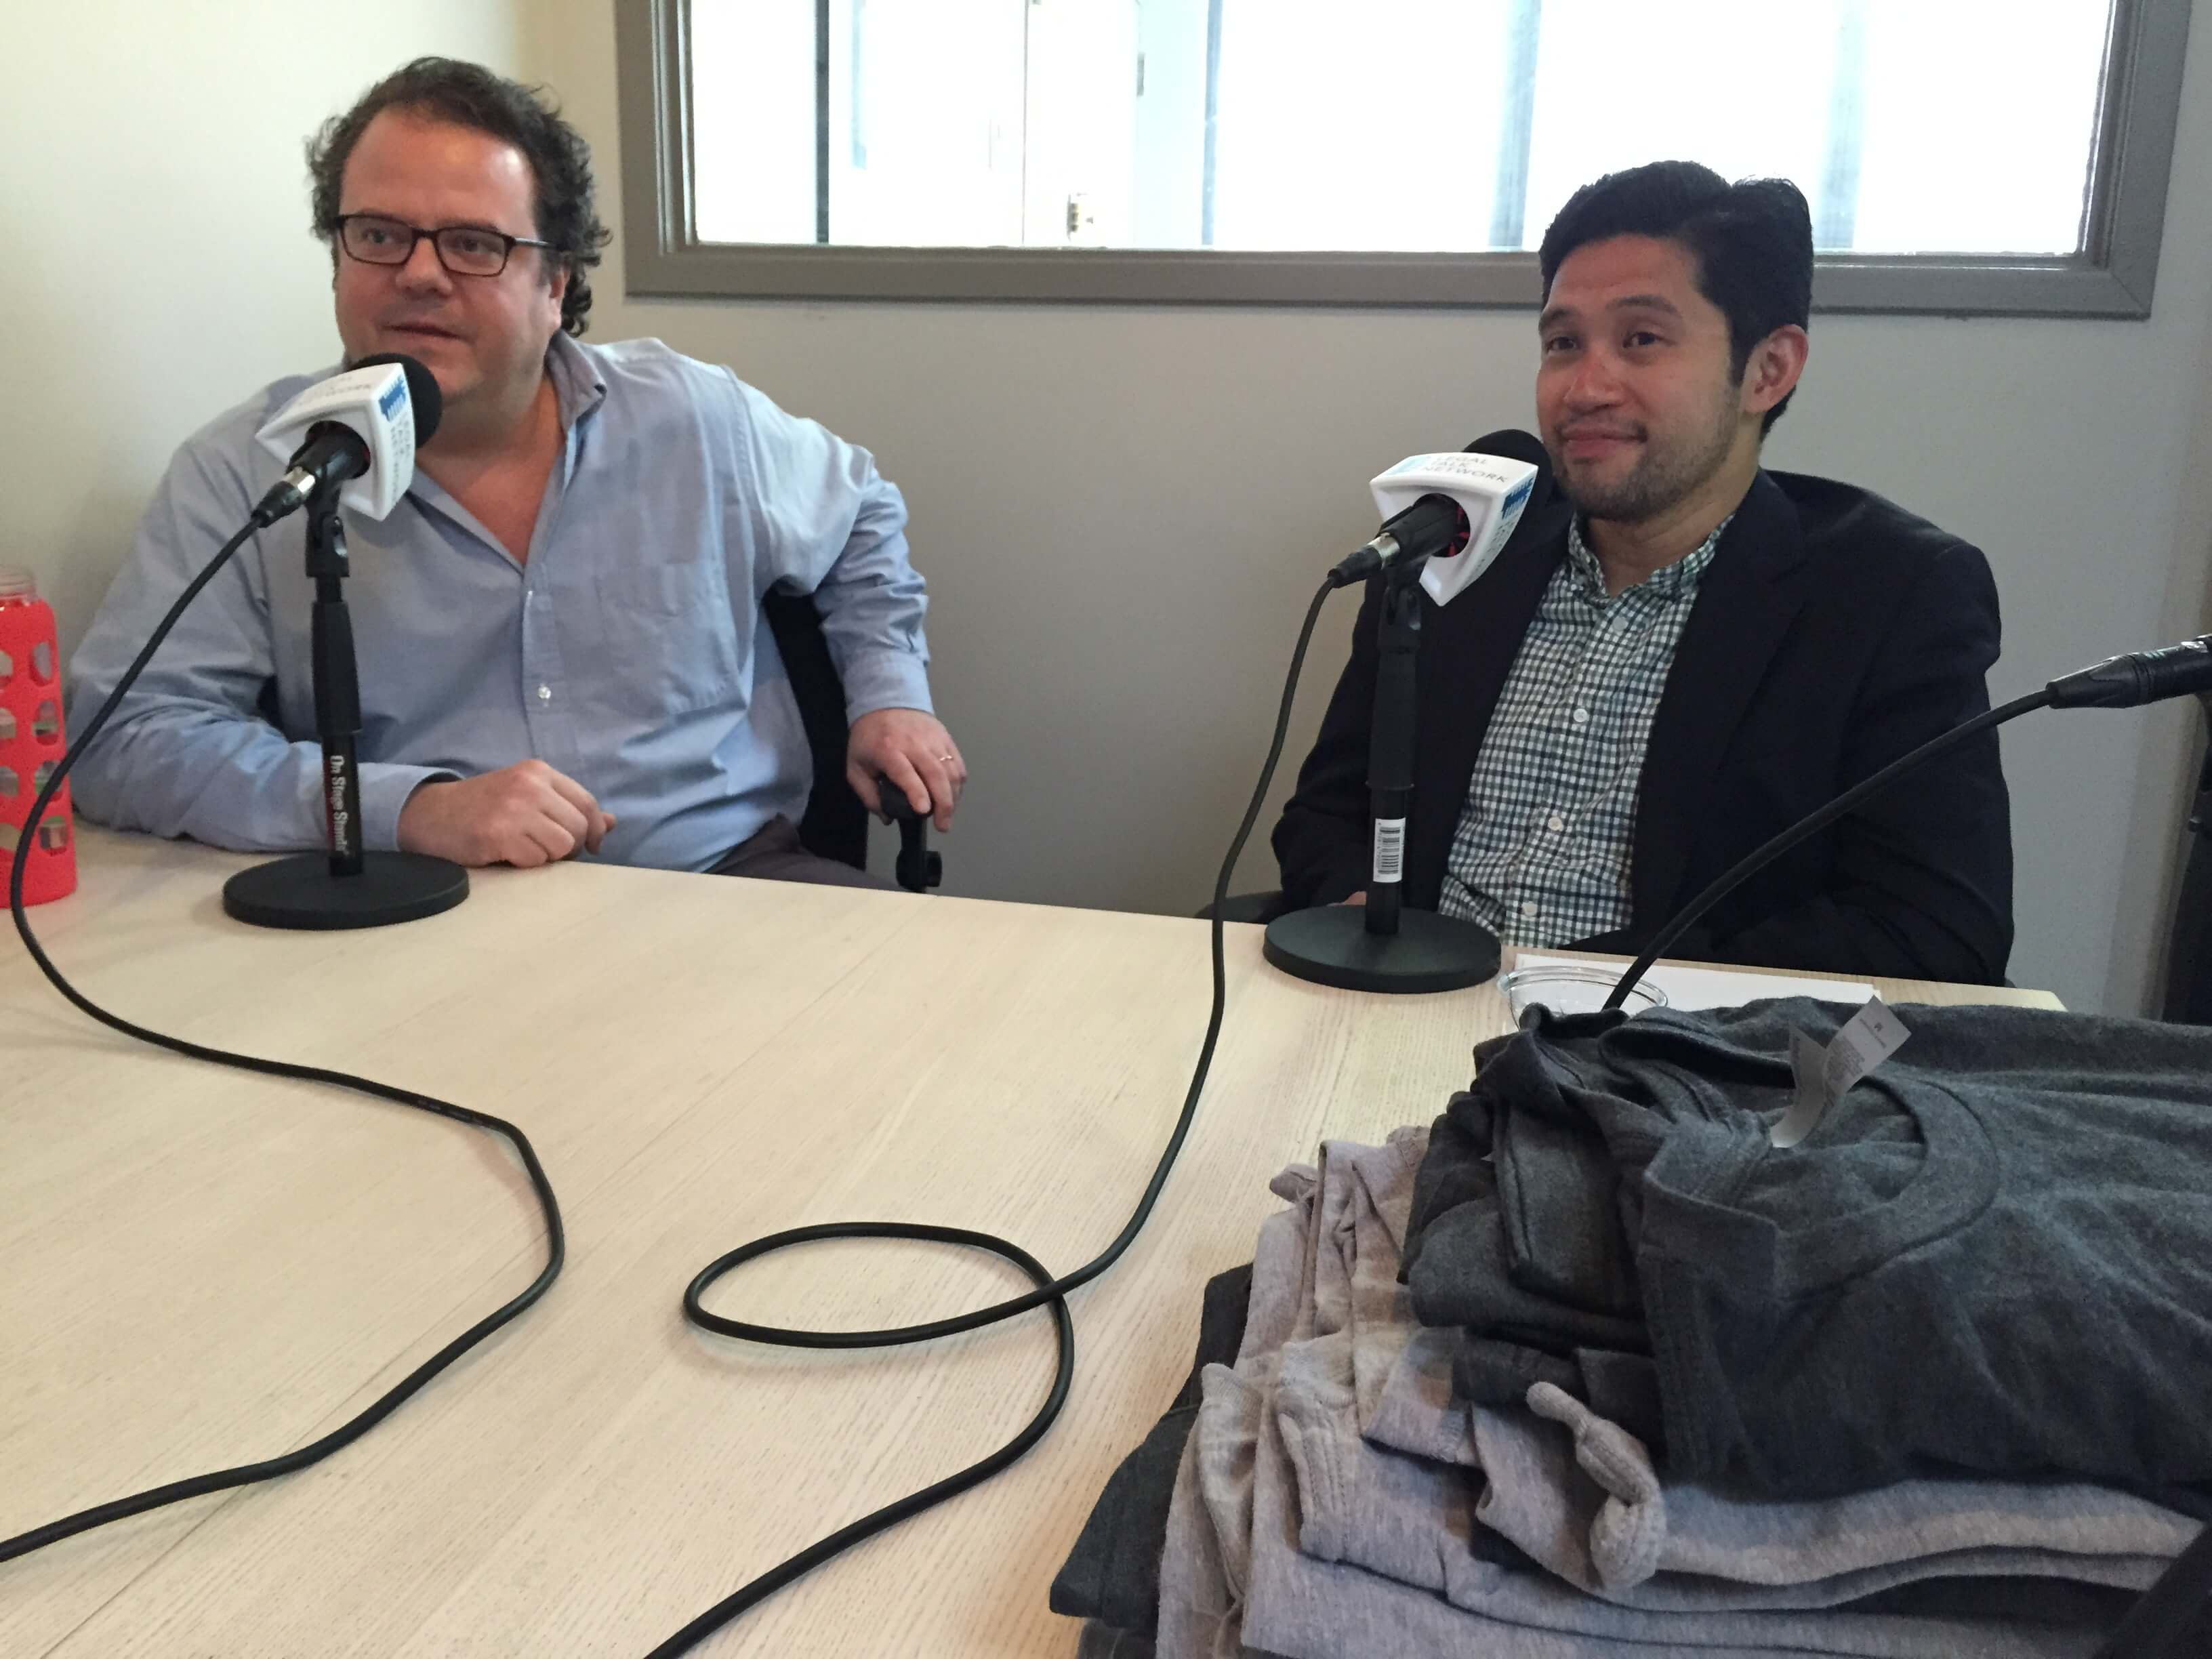 Interview with Above the Law Founder and Editing Manager David Lat and Breaking Media CEO John Lerner